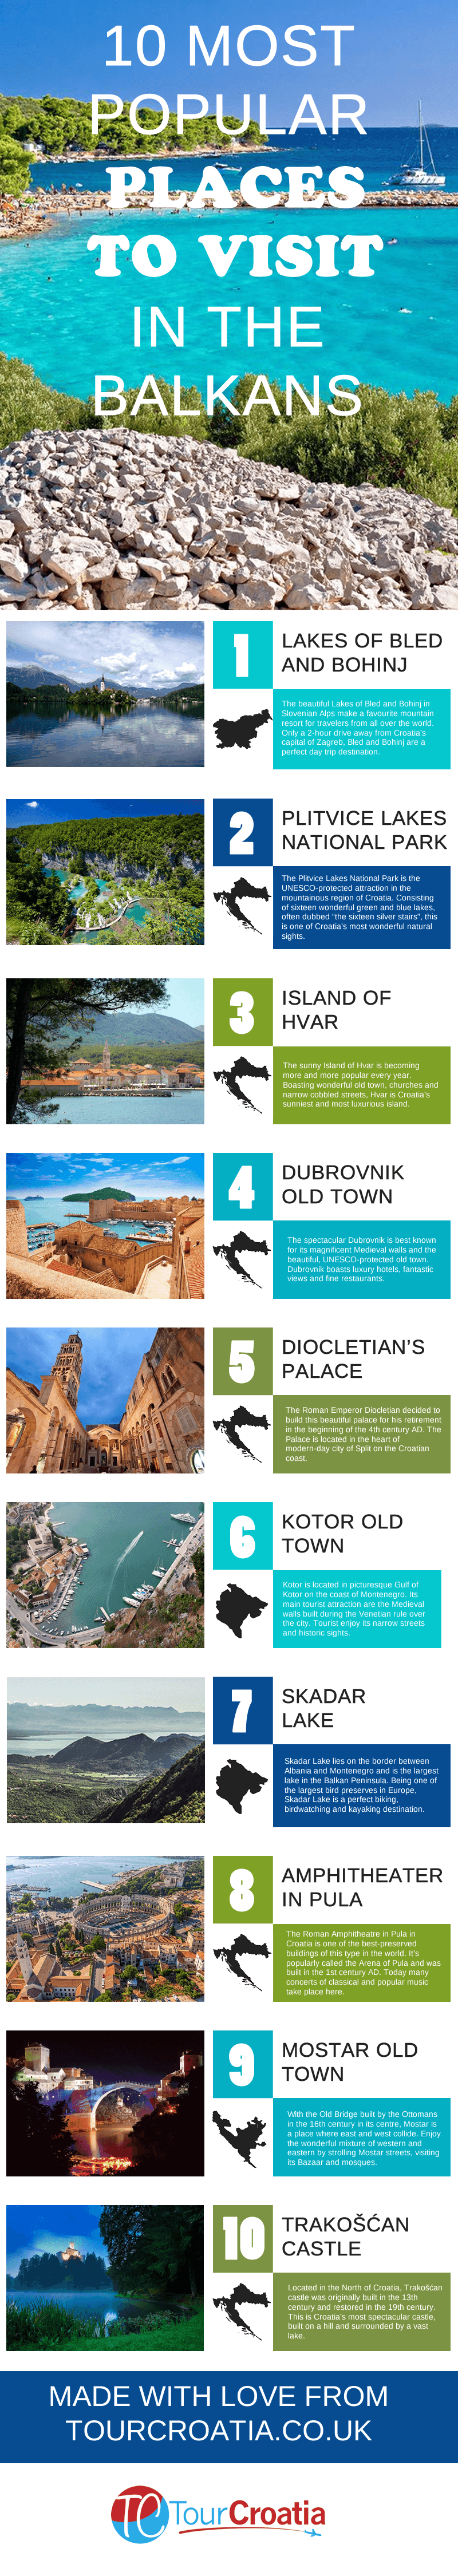 10 Most Popular Places to Visit in the Balkans [Infographic]